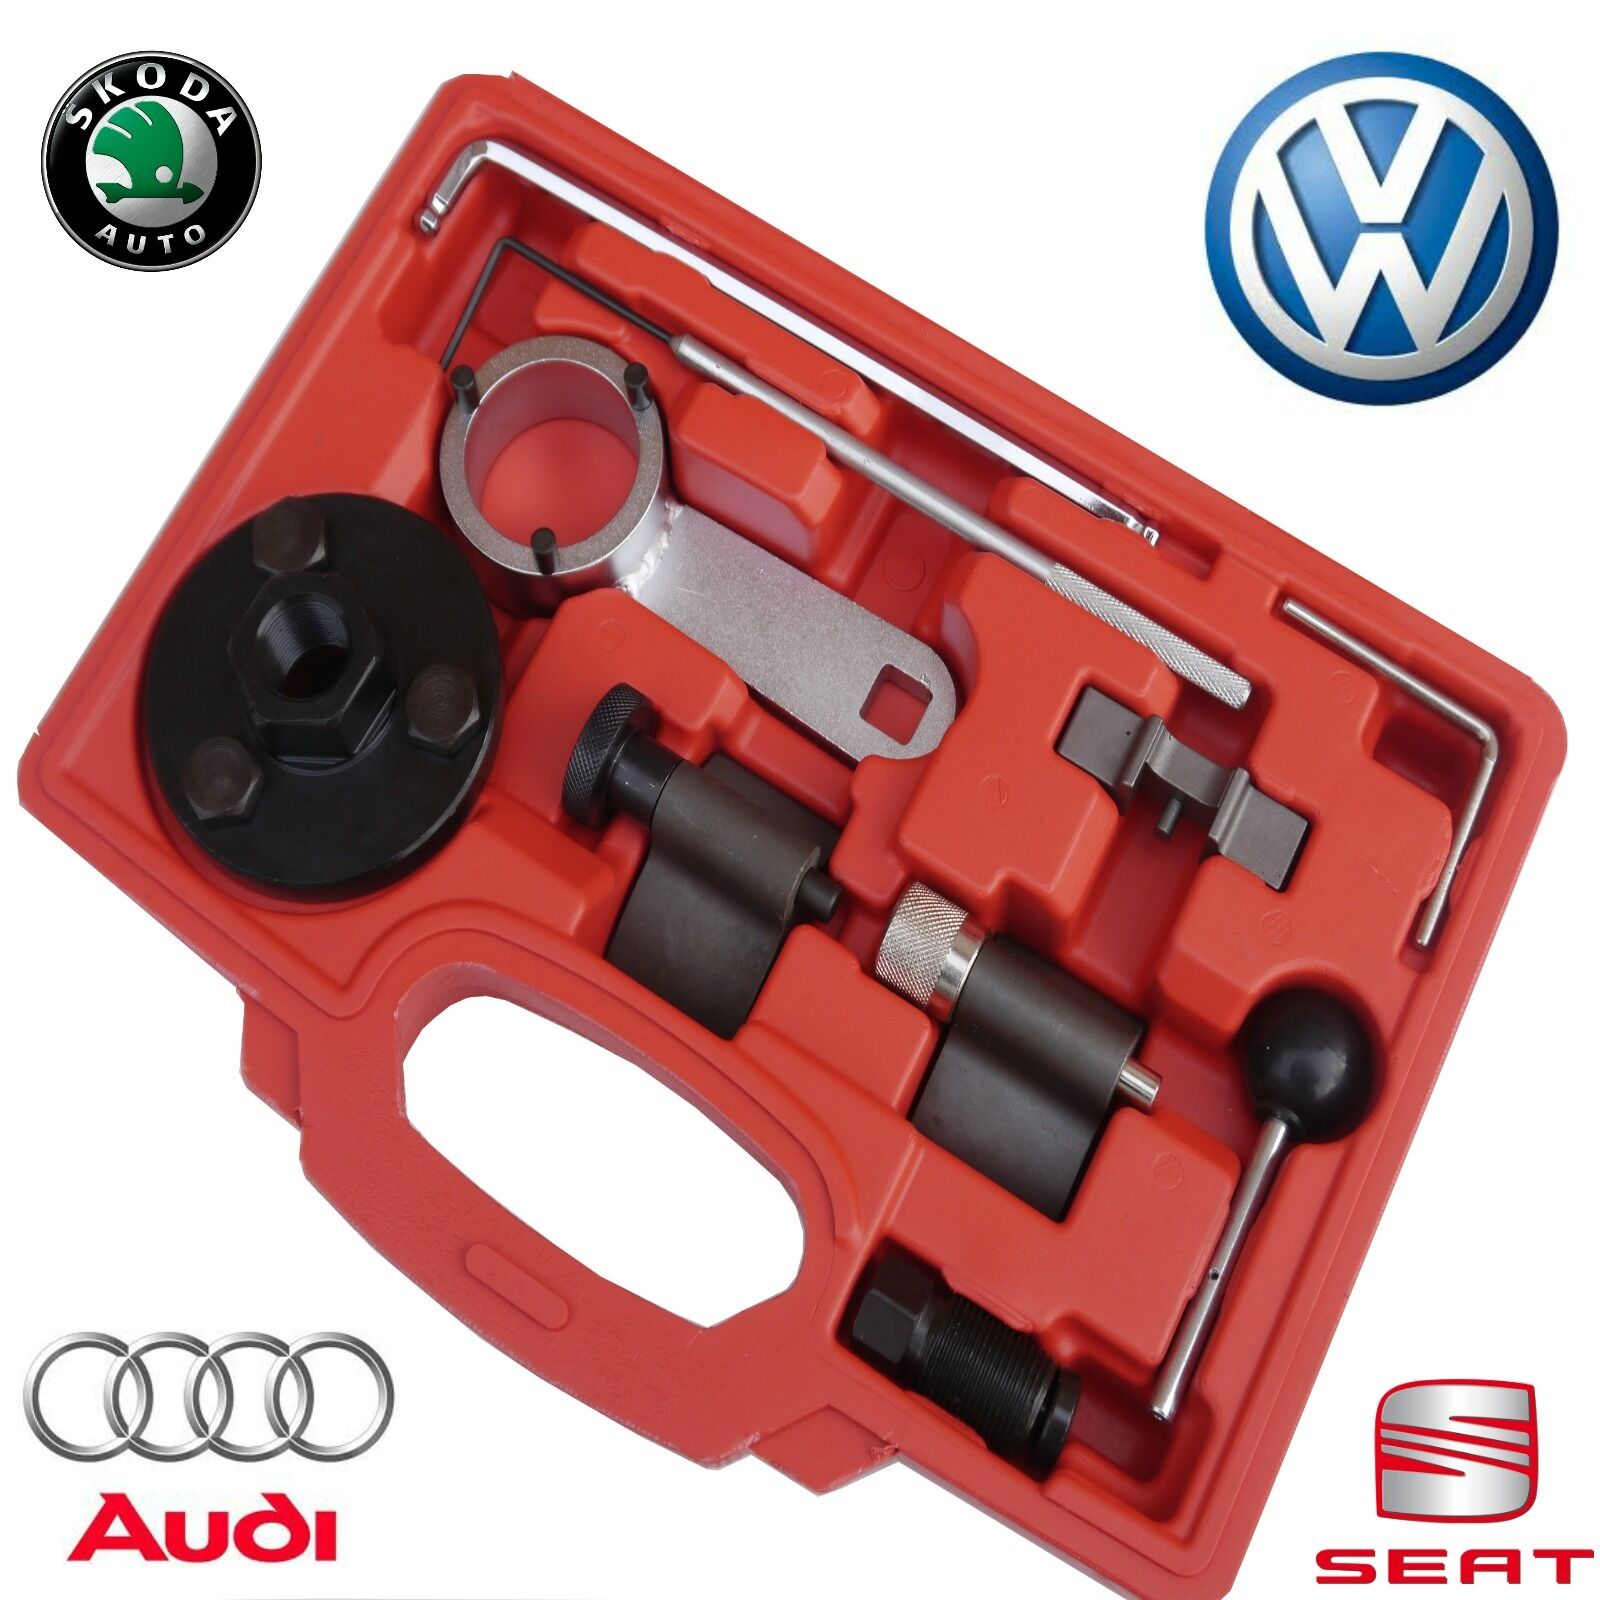 Vw 1600 Engine Removal: VW Golf Audi Timing Tool Set Kit VAG 1.6 2.0 TDi CR Blue